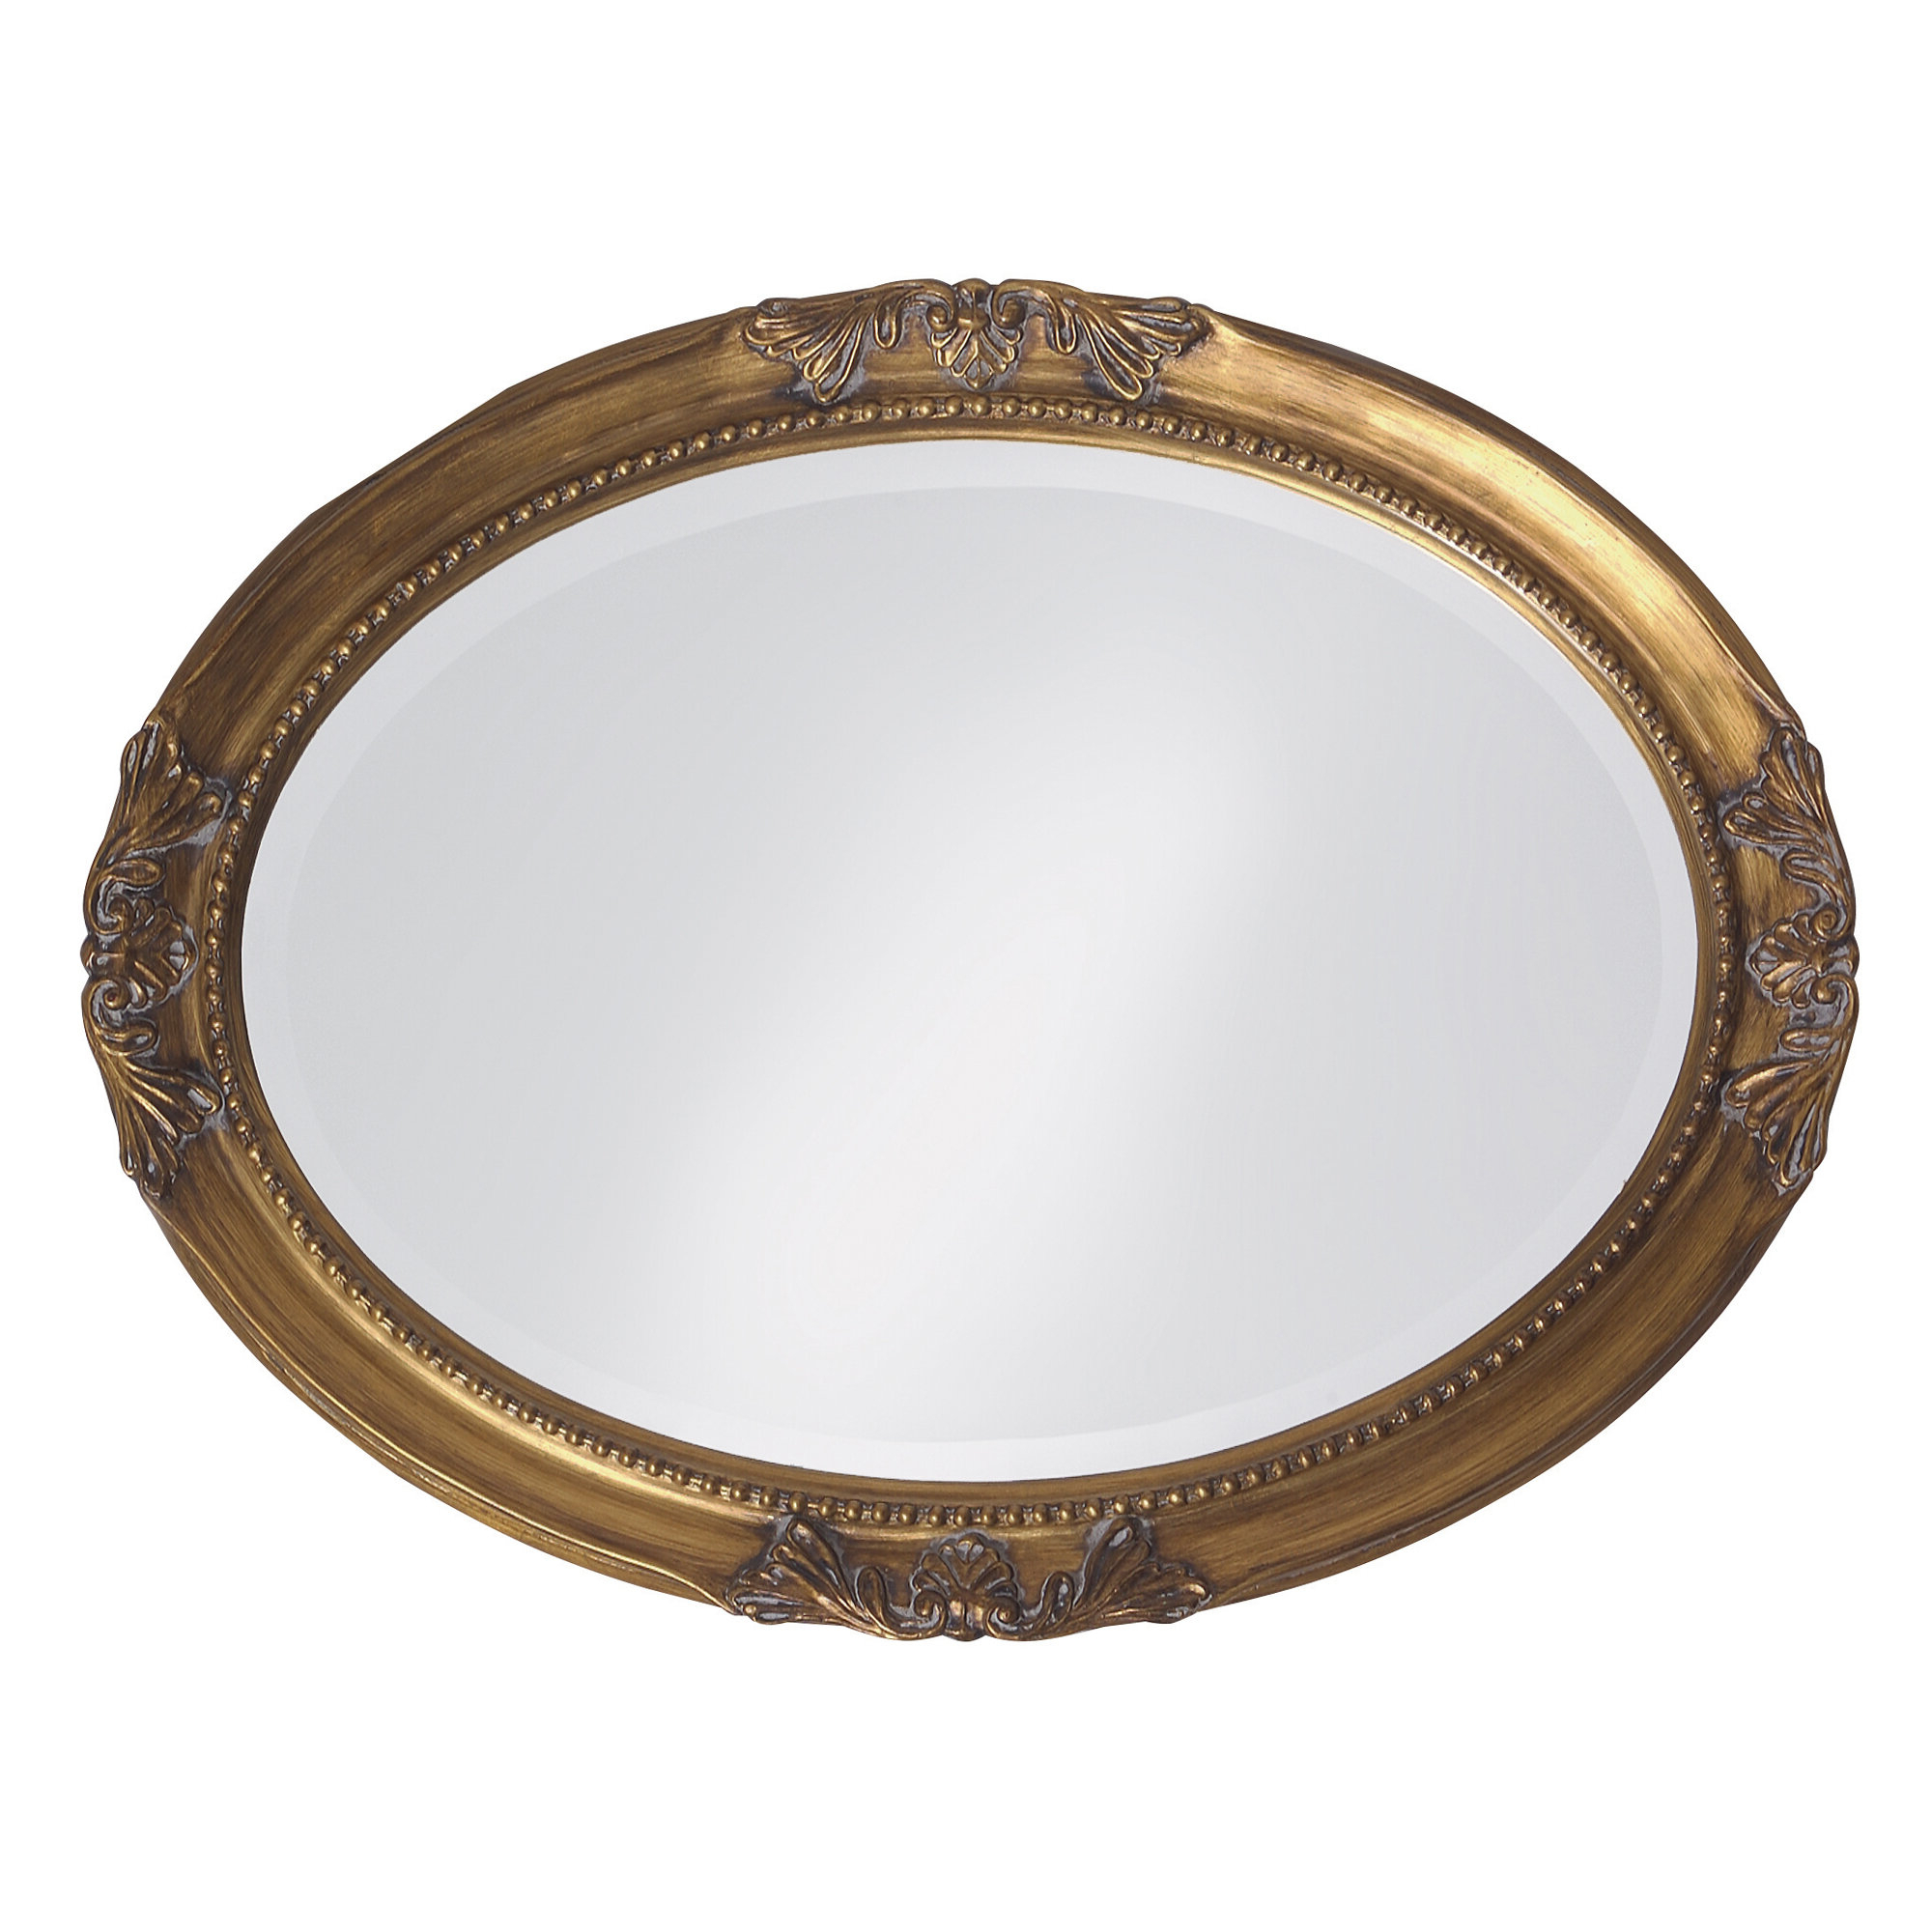 Oval Wood Wall Mirror Pertaining To Well Liked Oval Wood Wall Mirrors (View 11 of 20)